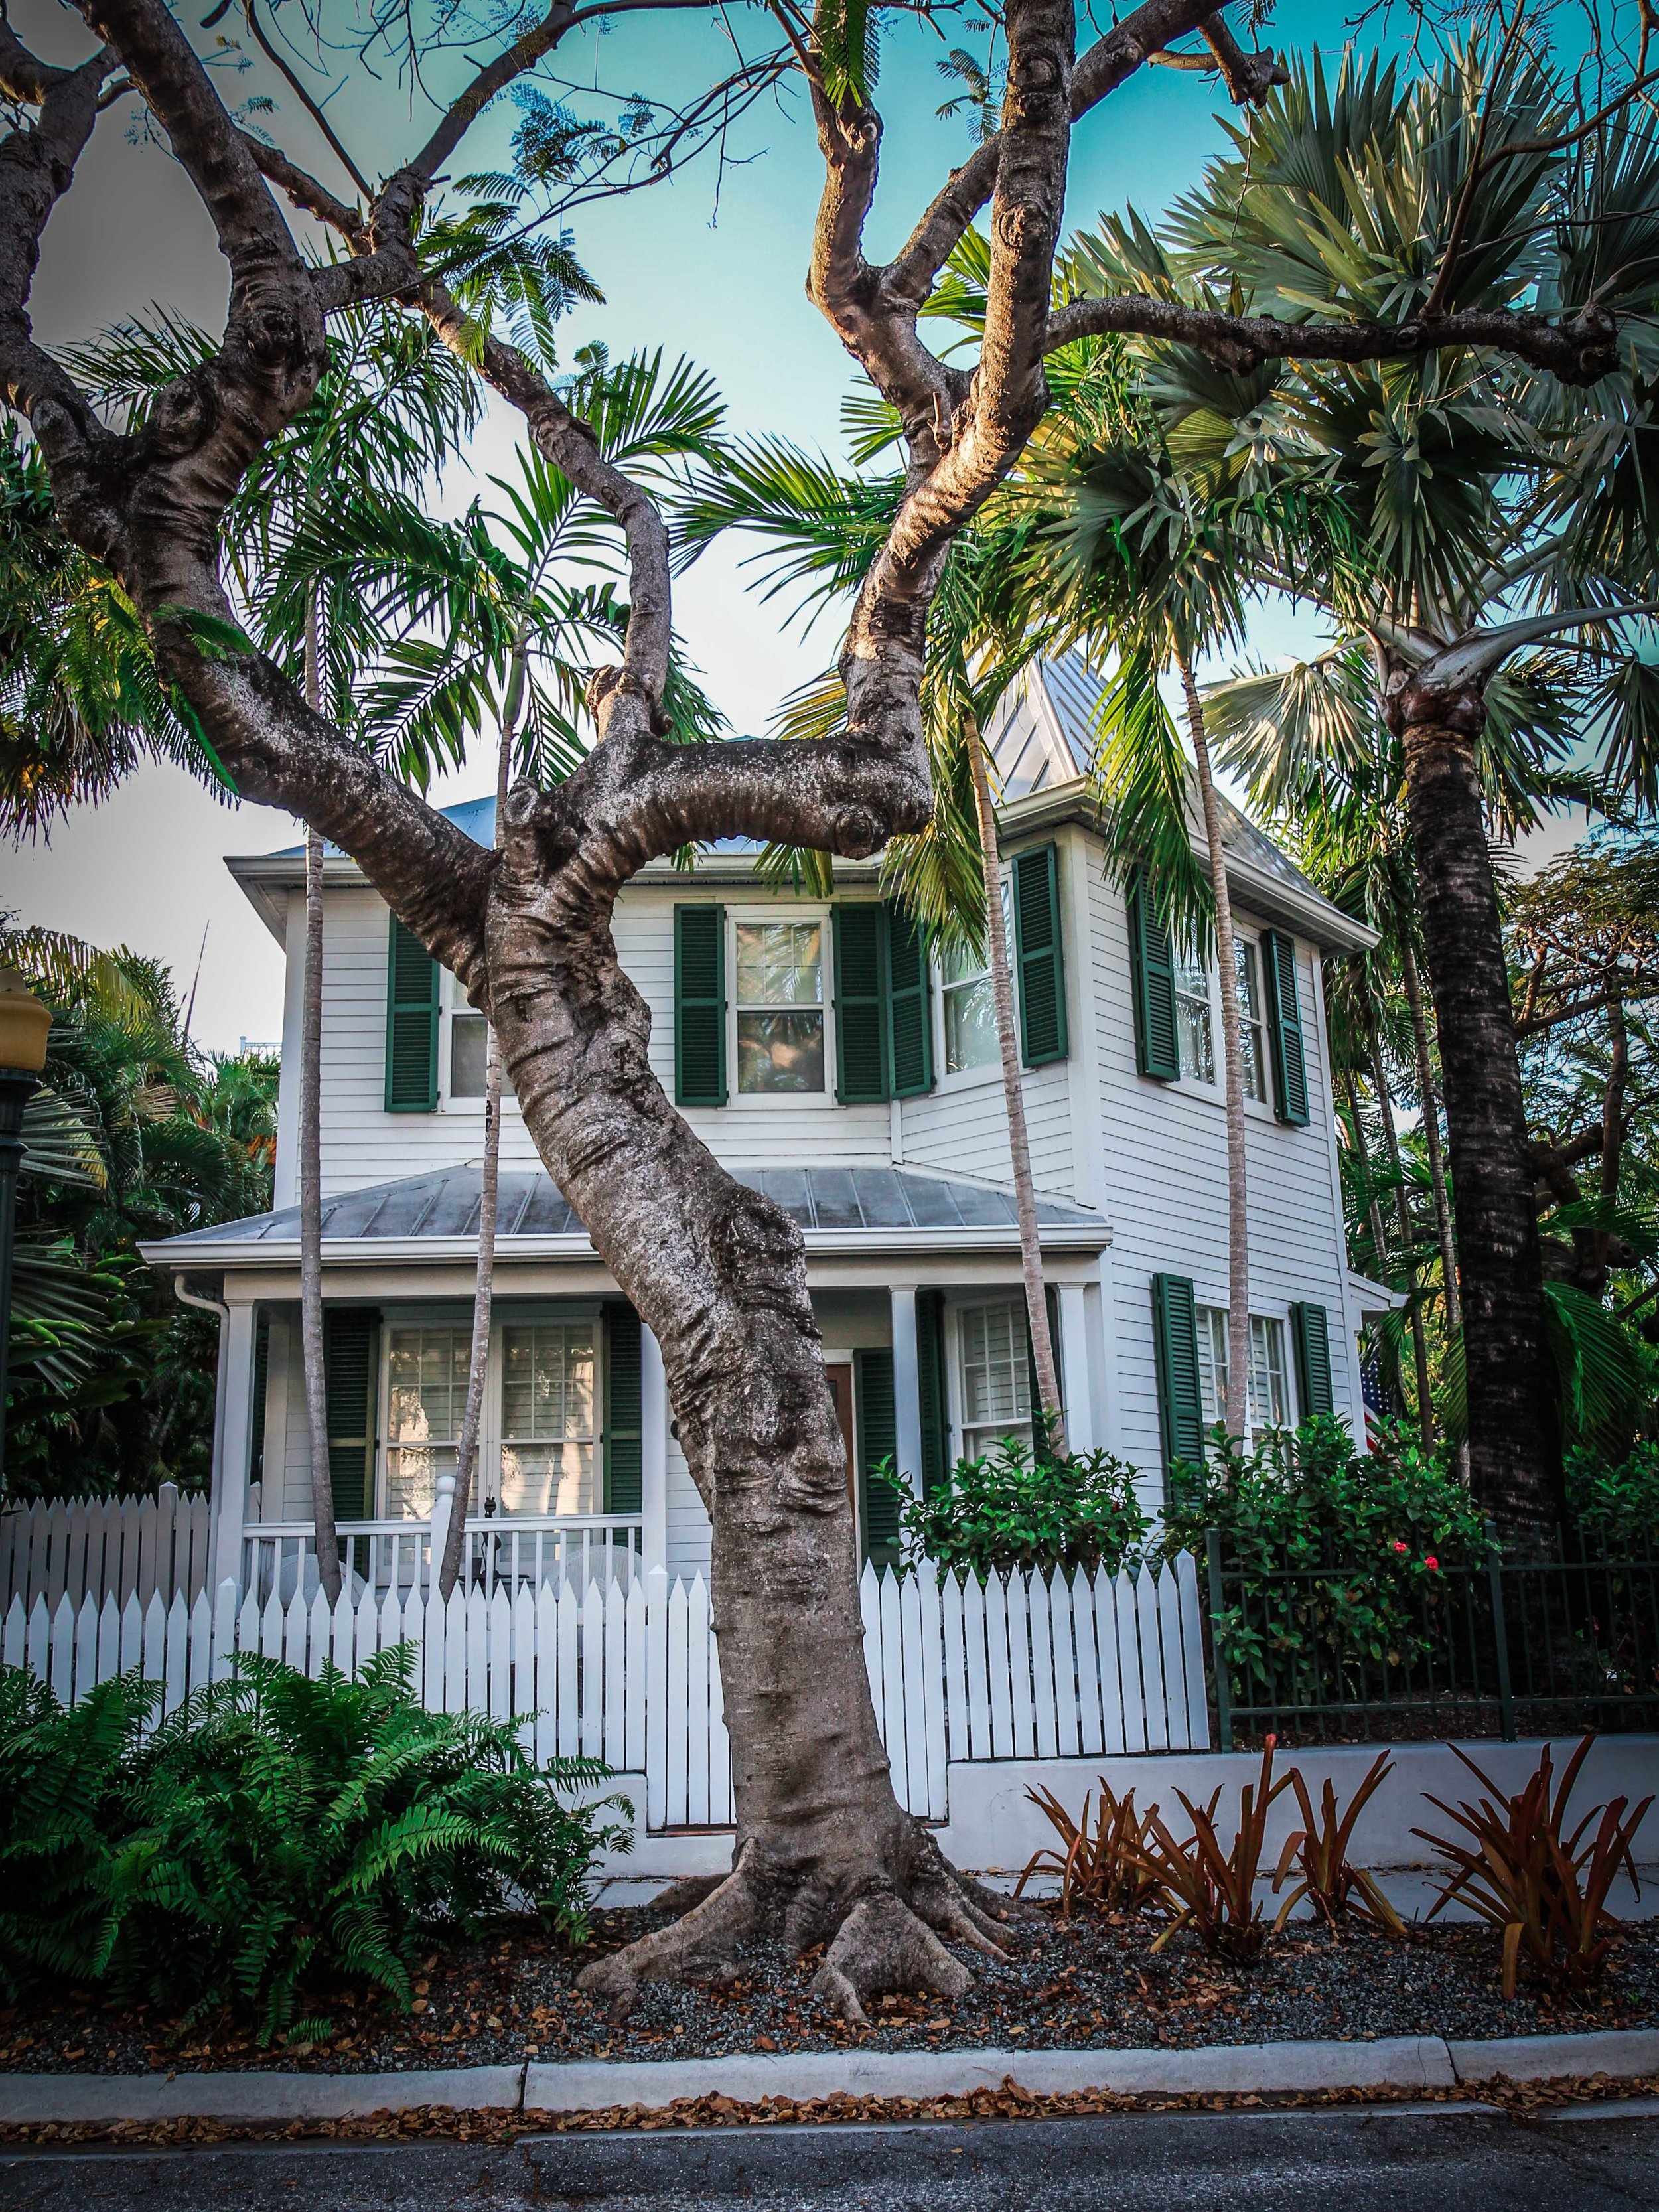 Florida_keys-_Key_west_To_do_reizen_met_kinderen-32.jpg